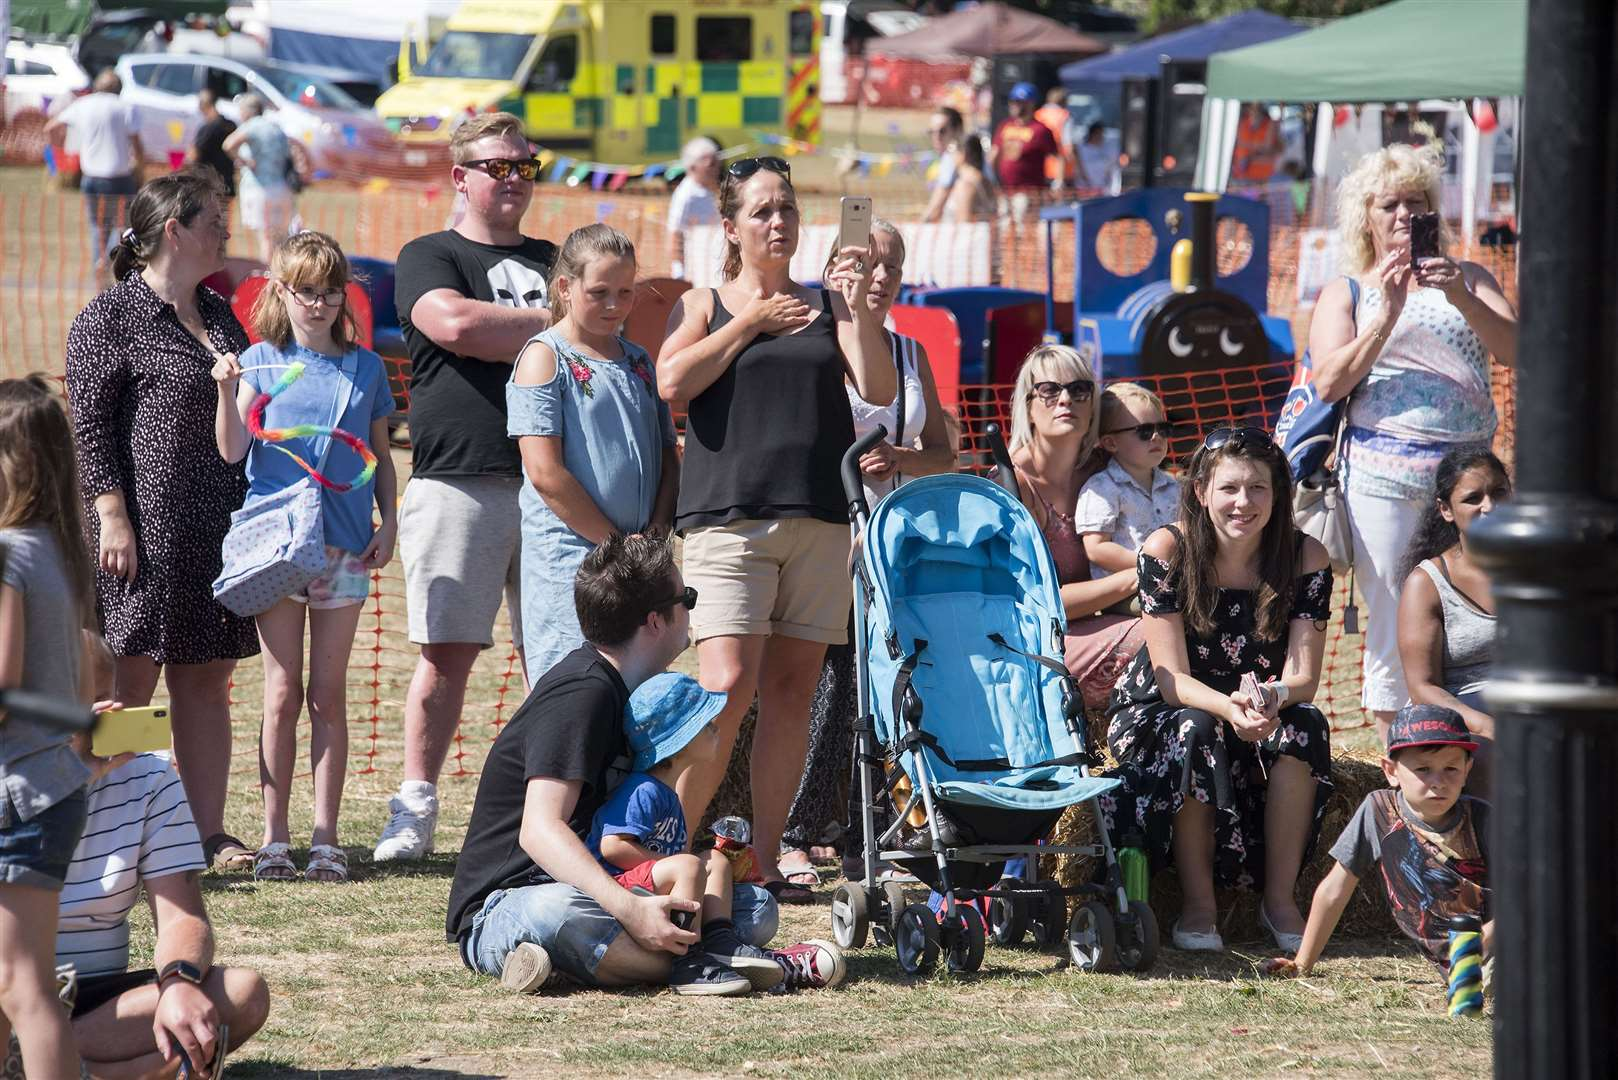 People enjoying the Haverhill Show last year, when temperatures were soaring. Picture by Mark Westley.